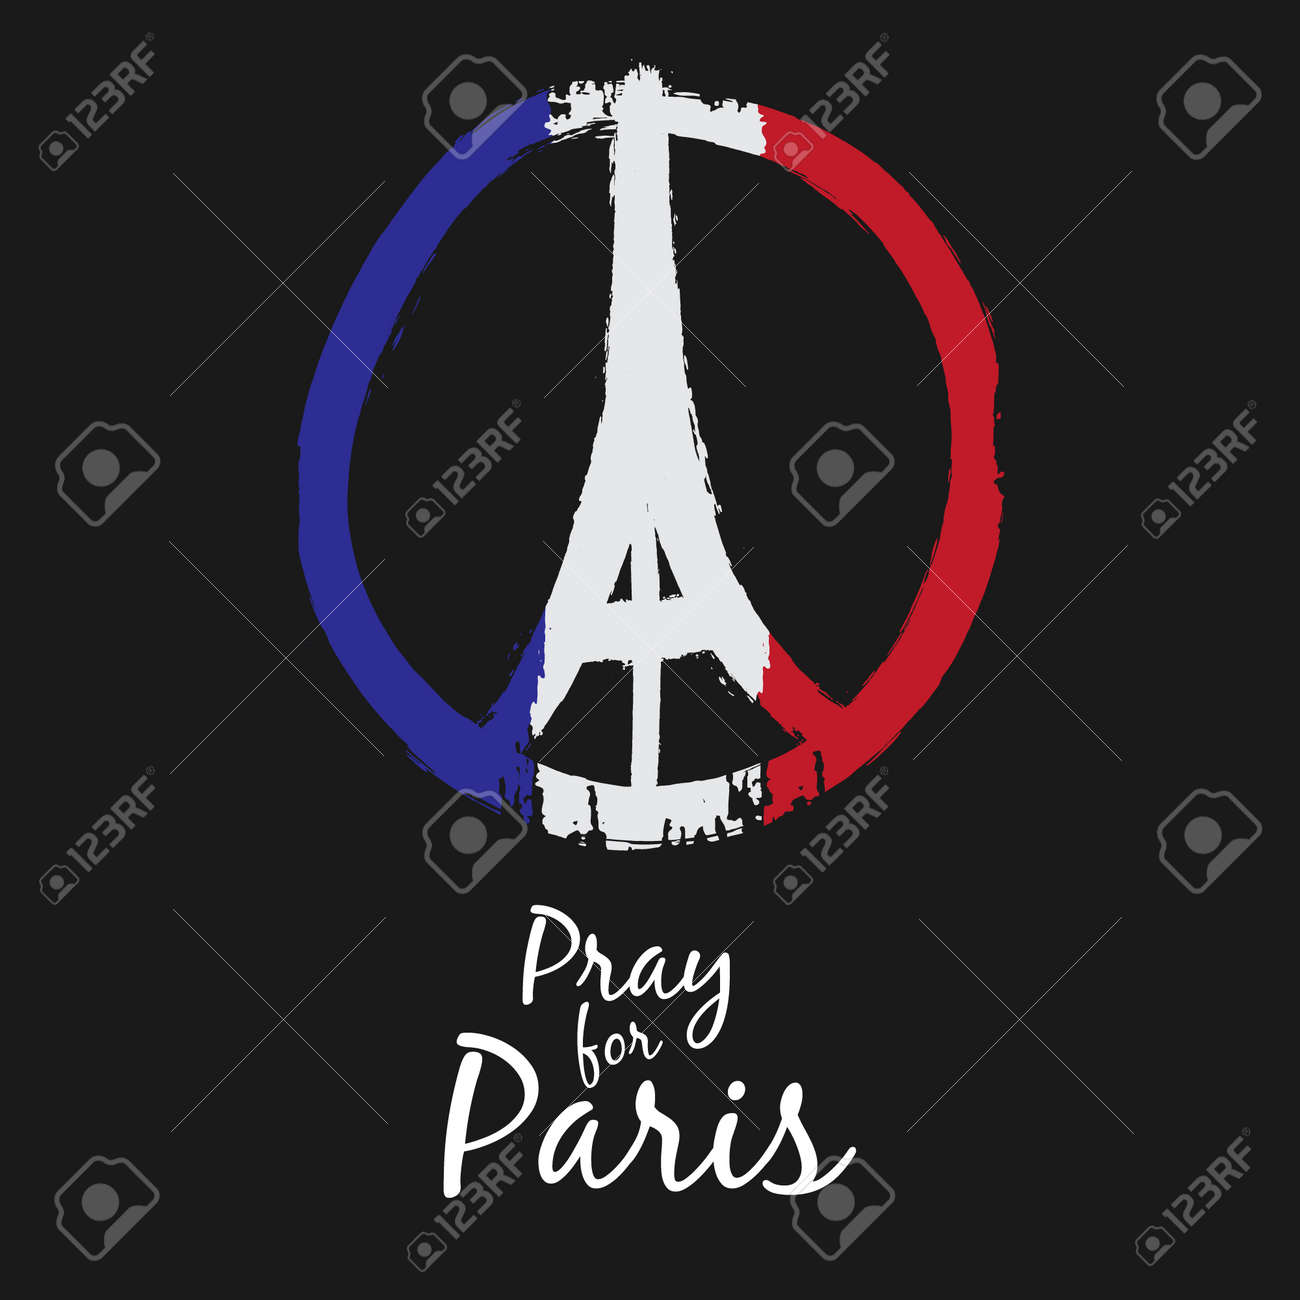 Freehand drawn sketch peace for Paris illustration of pray hands and Eiffel Tower , doodle hand drawn, Peace for Paris, Pray for Paris with France Flag Colors - 48615981